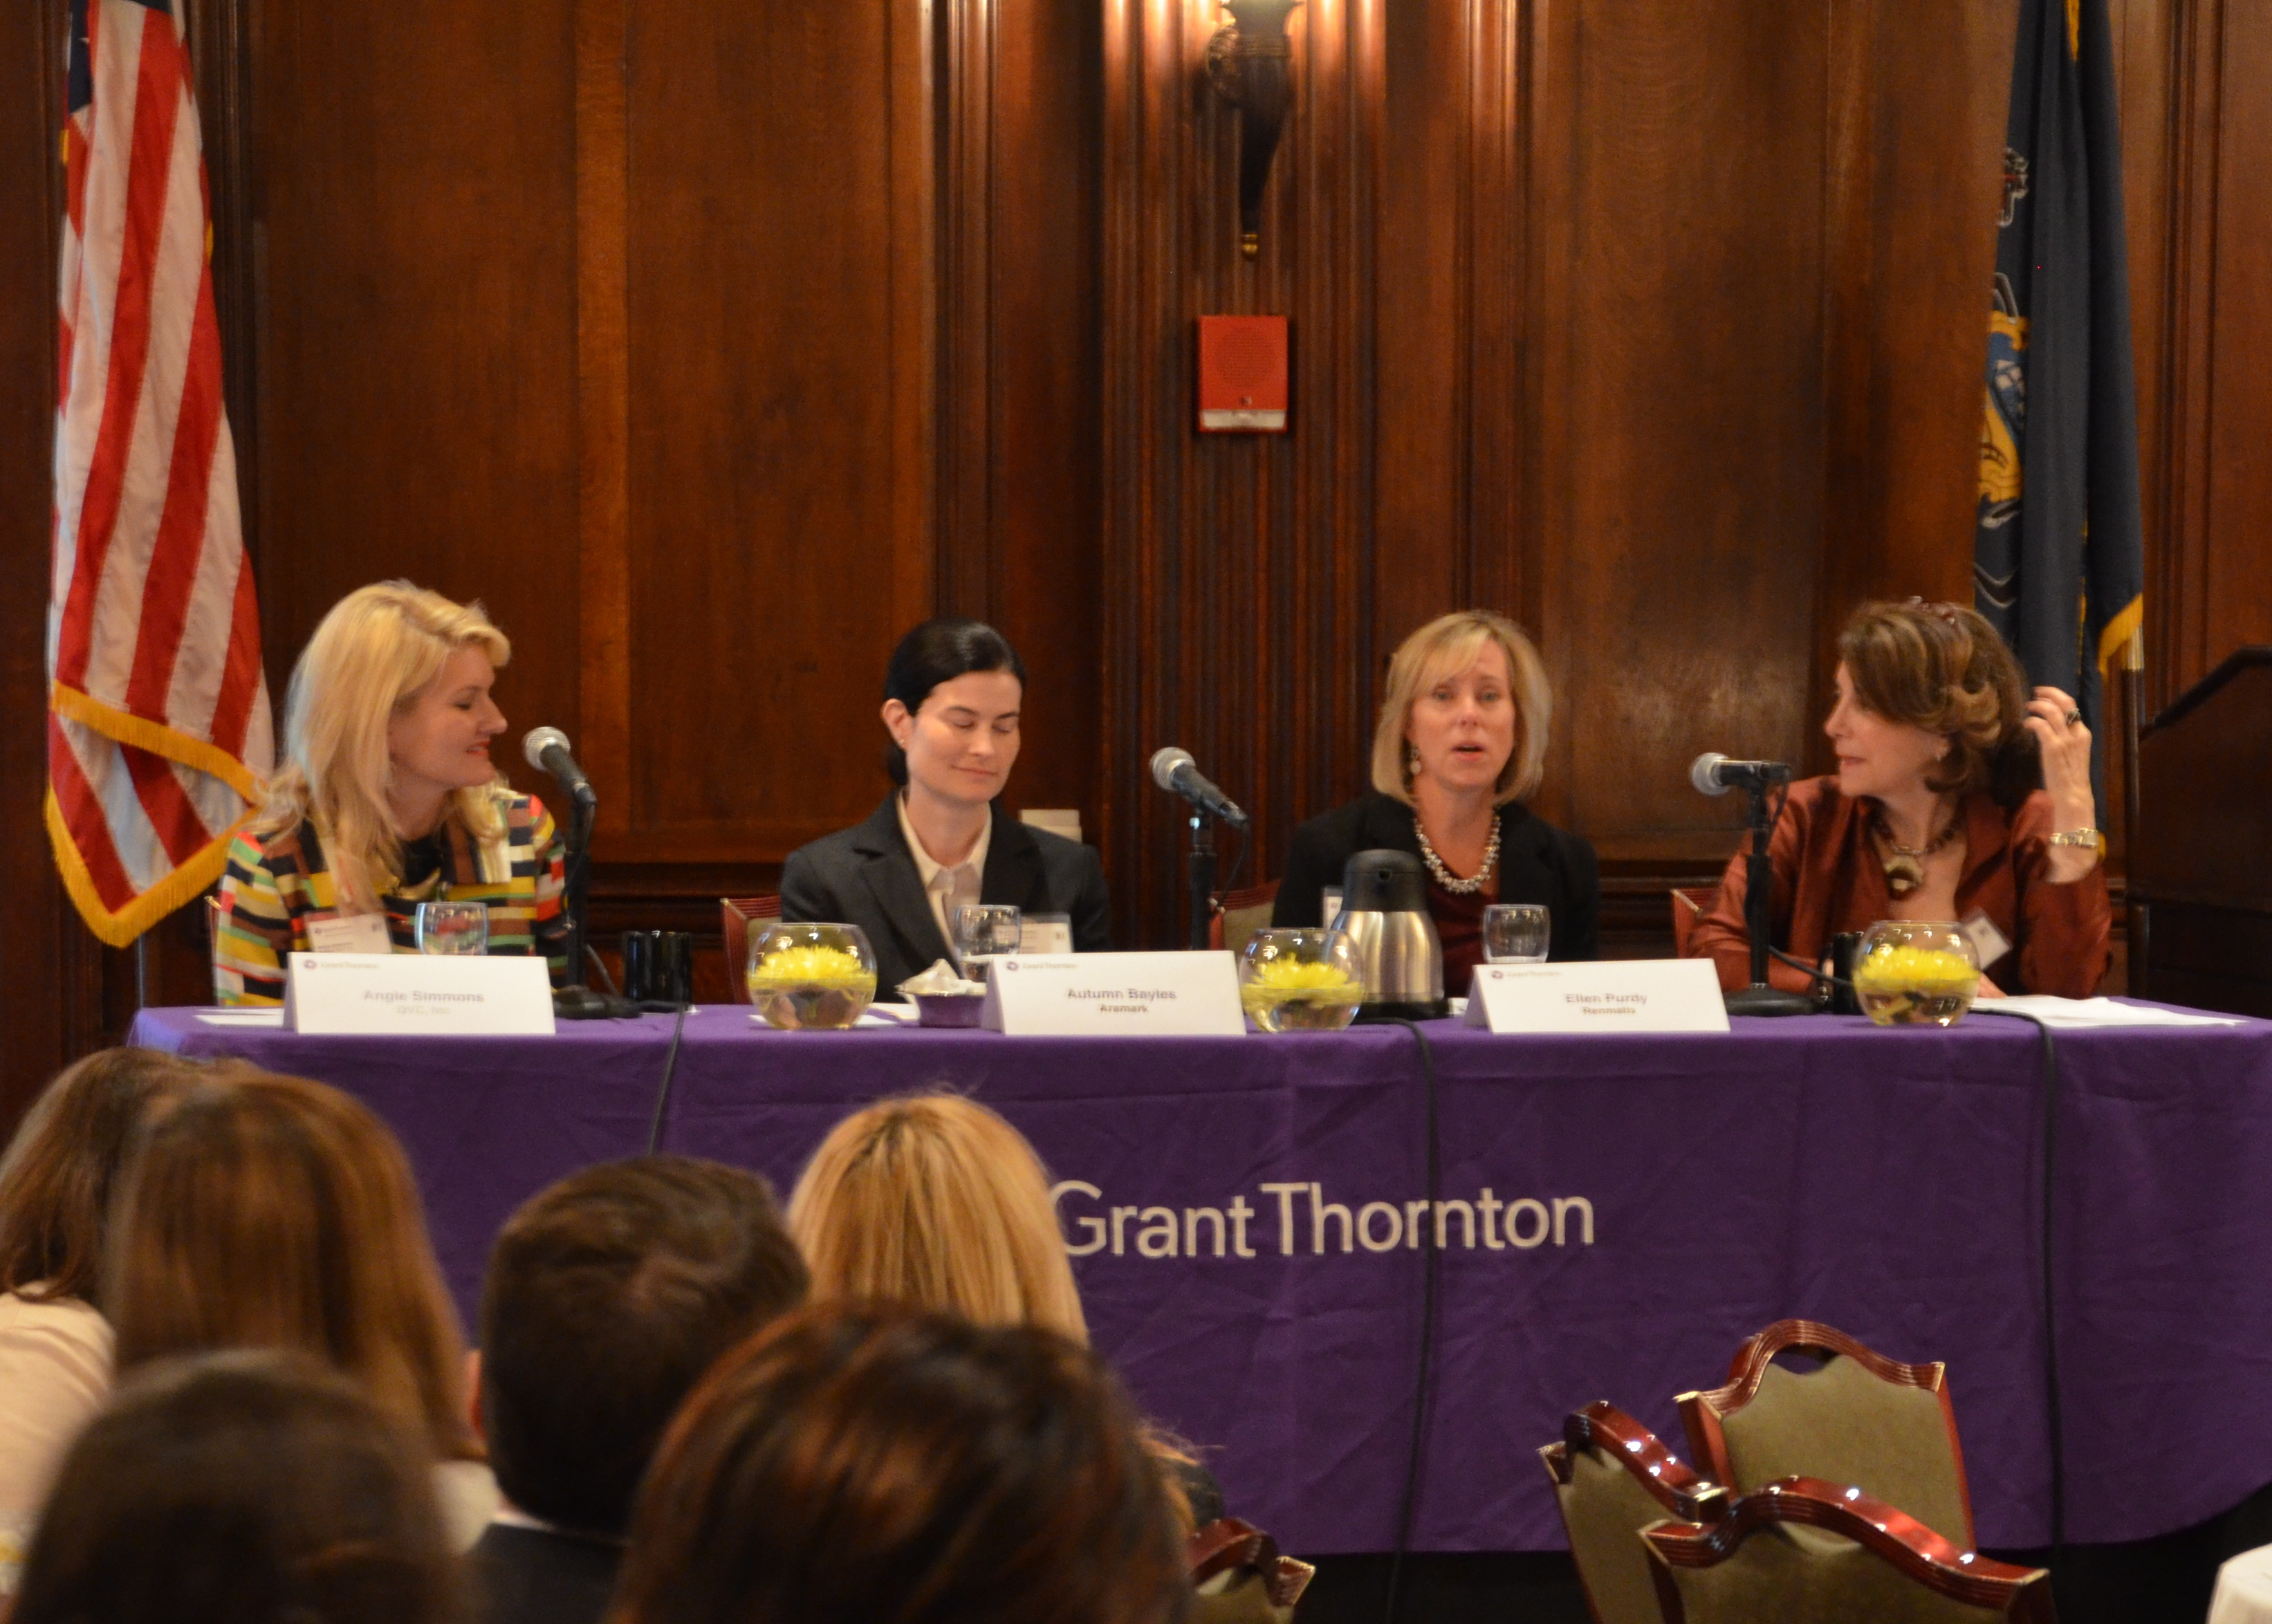 The panel of successful women business leaders discusses the role of women in the workplace.  Panelists from left to right: Angie Simmons, VP of Strategic Development for Aramark, Ellen Purdy, CFO of Renmatix, Autumn Bayles, Executive VP of Multichannel Platforms for QVC and moderator of the event, Marjorie Margolies, former member of the U.S. House of Representatives and current adjunct professor at the University of Pennsylvania.